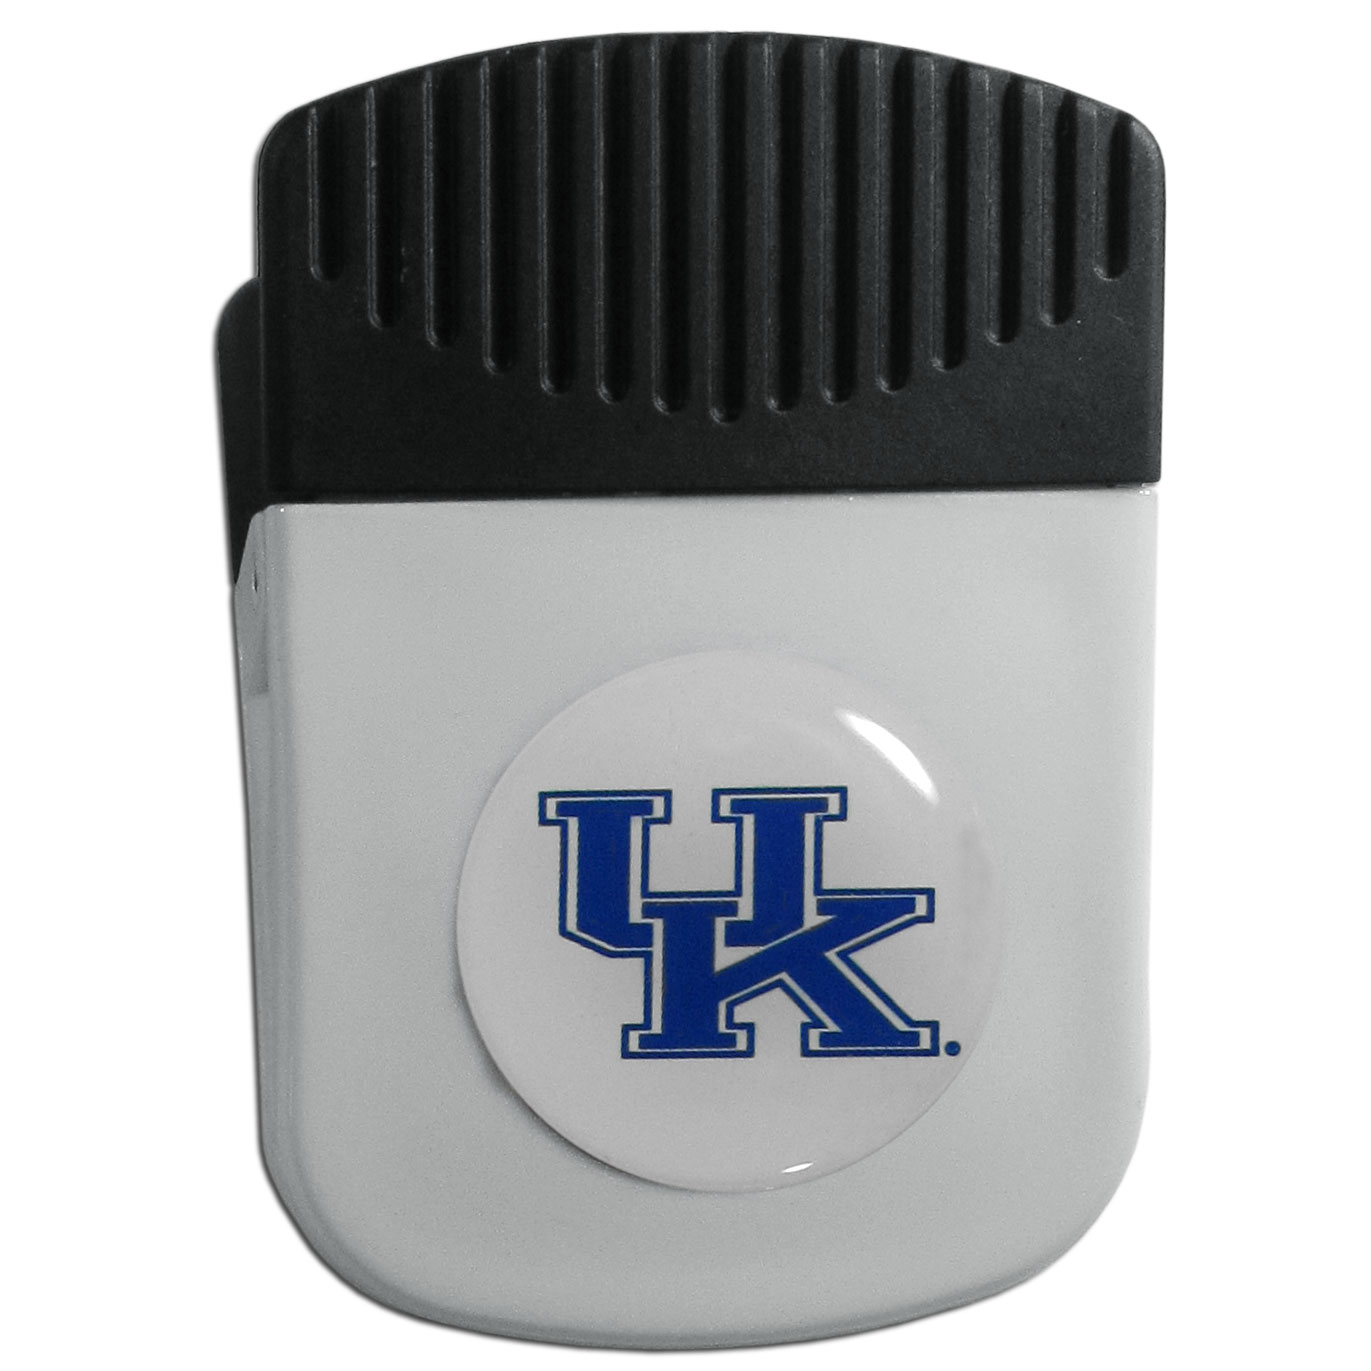 Kentucky Wildcats Chip Clip Magnet - Use this attractive clip magnet to hold memos, photos or appointment cards on the fridge or take it down keep use it to clip bags shut. The magnet features a domed Kentucky Wildcats logo.